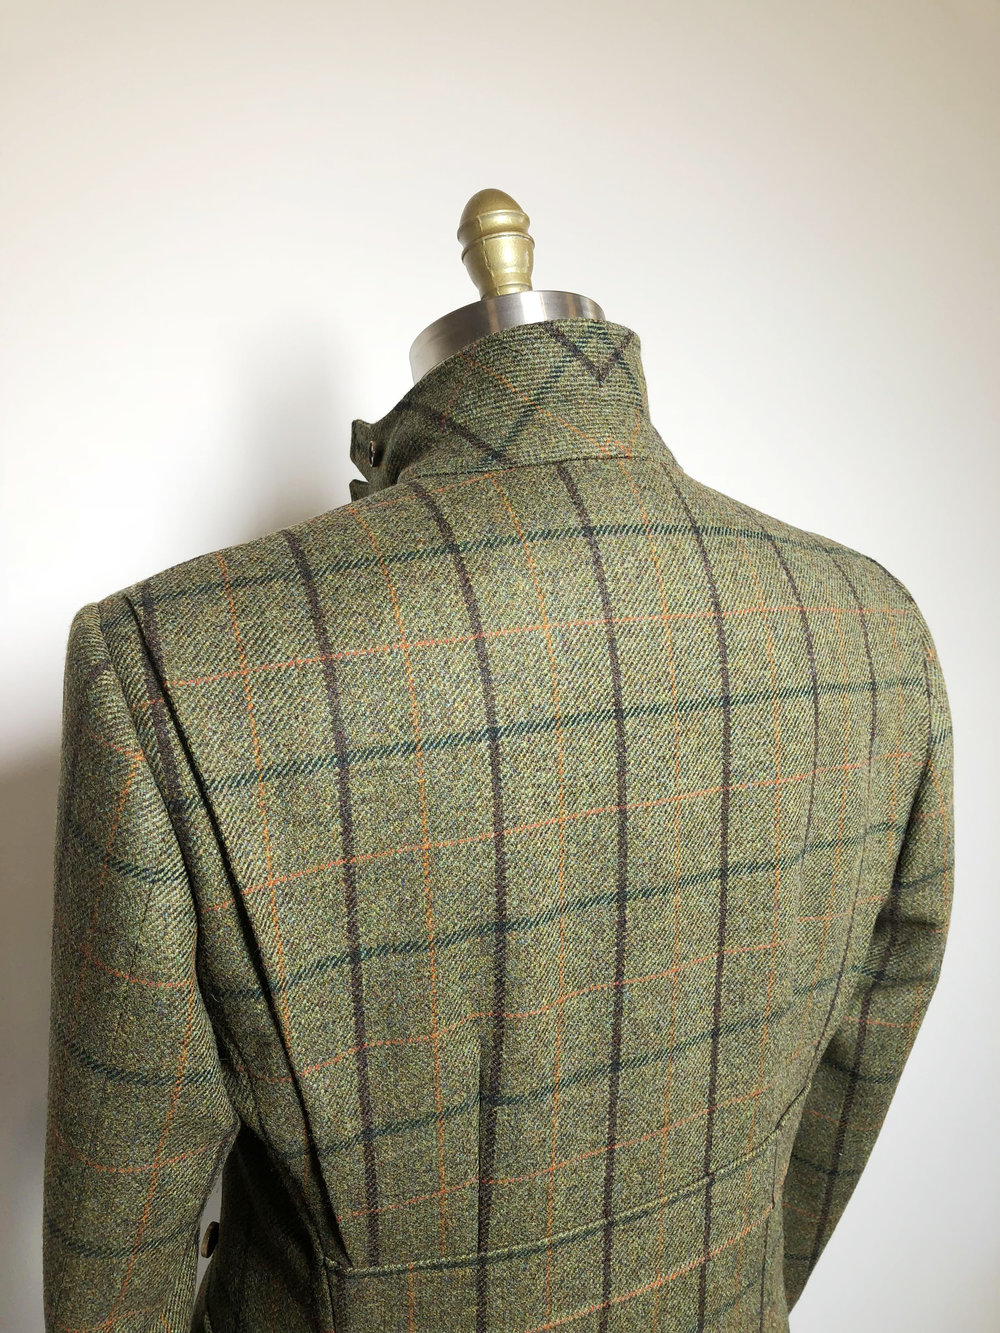 tweed suit back detail.jpg